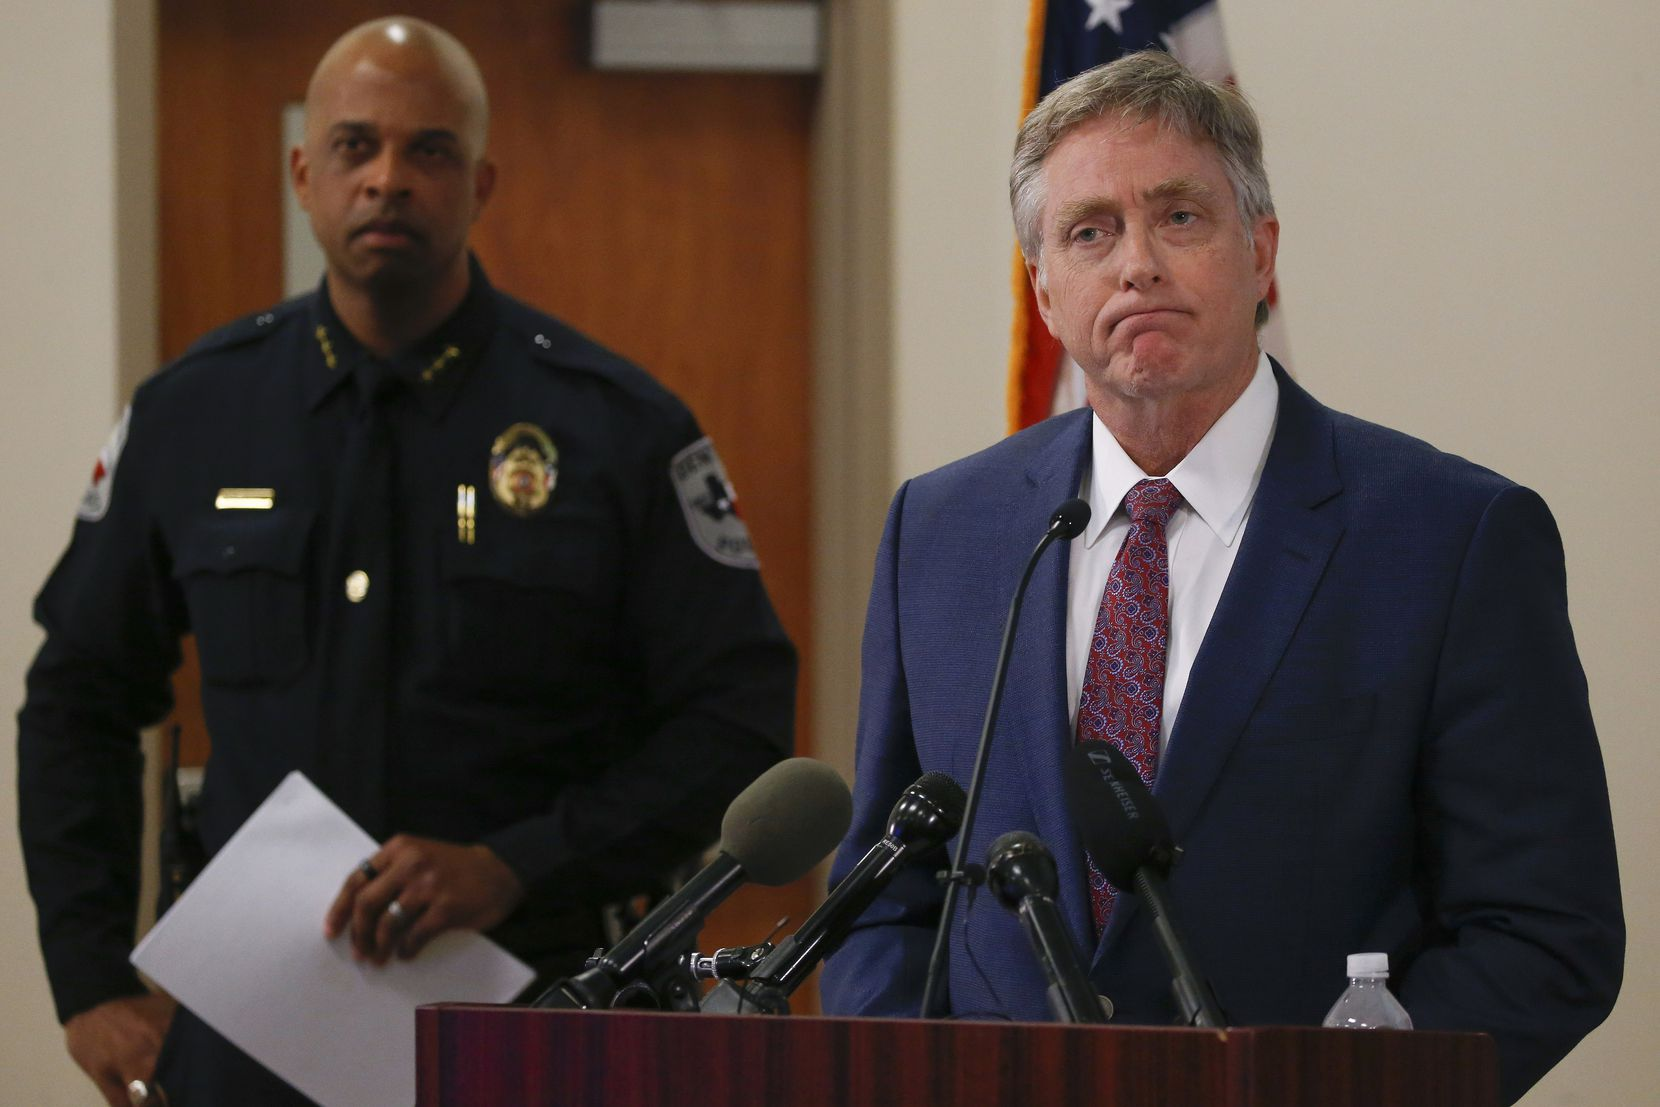 Denton Mayor Chris Watts (right) urged patience from the public in the Darius Tarver case last year. Denton Police Chief Frank Dixon is at rear.